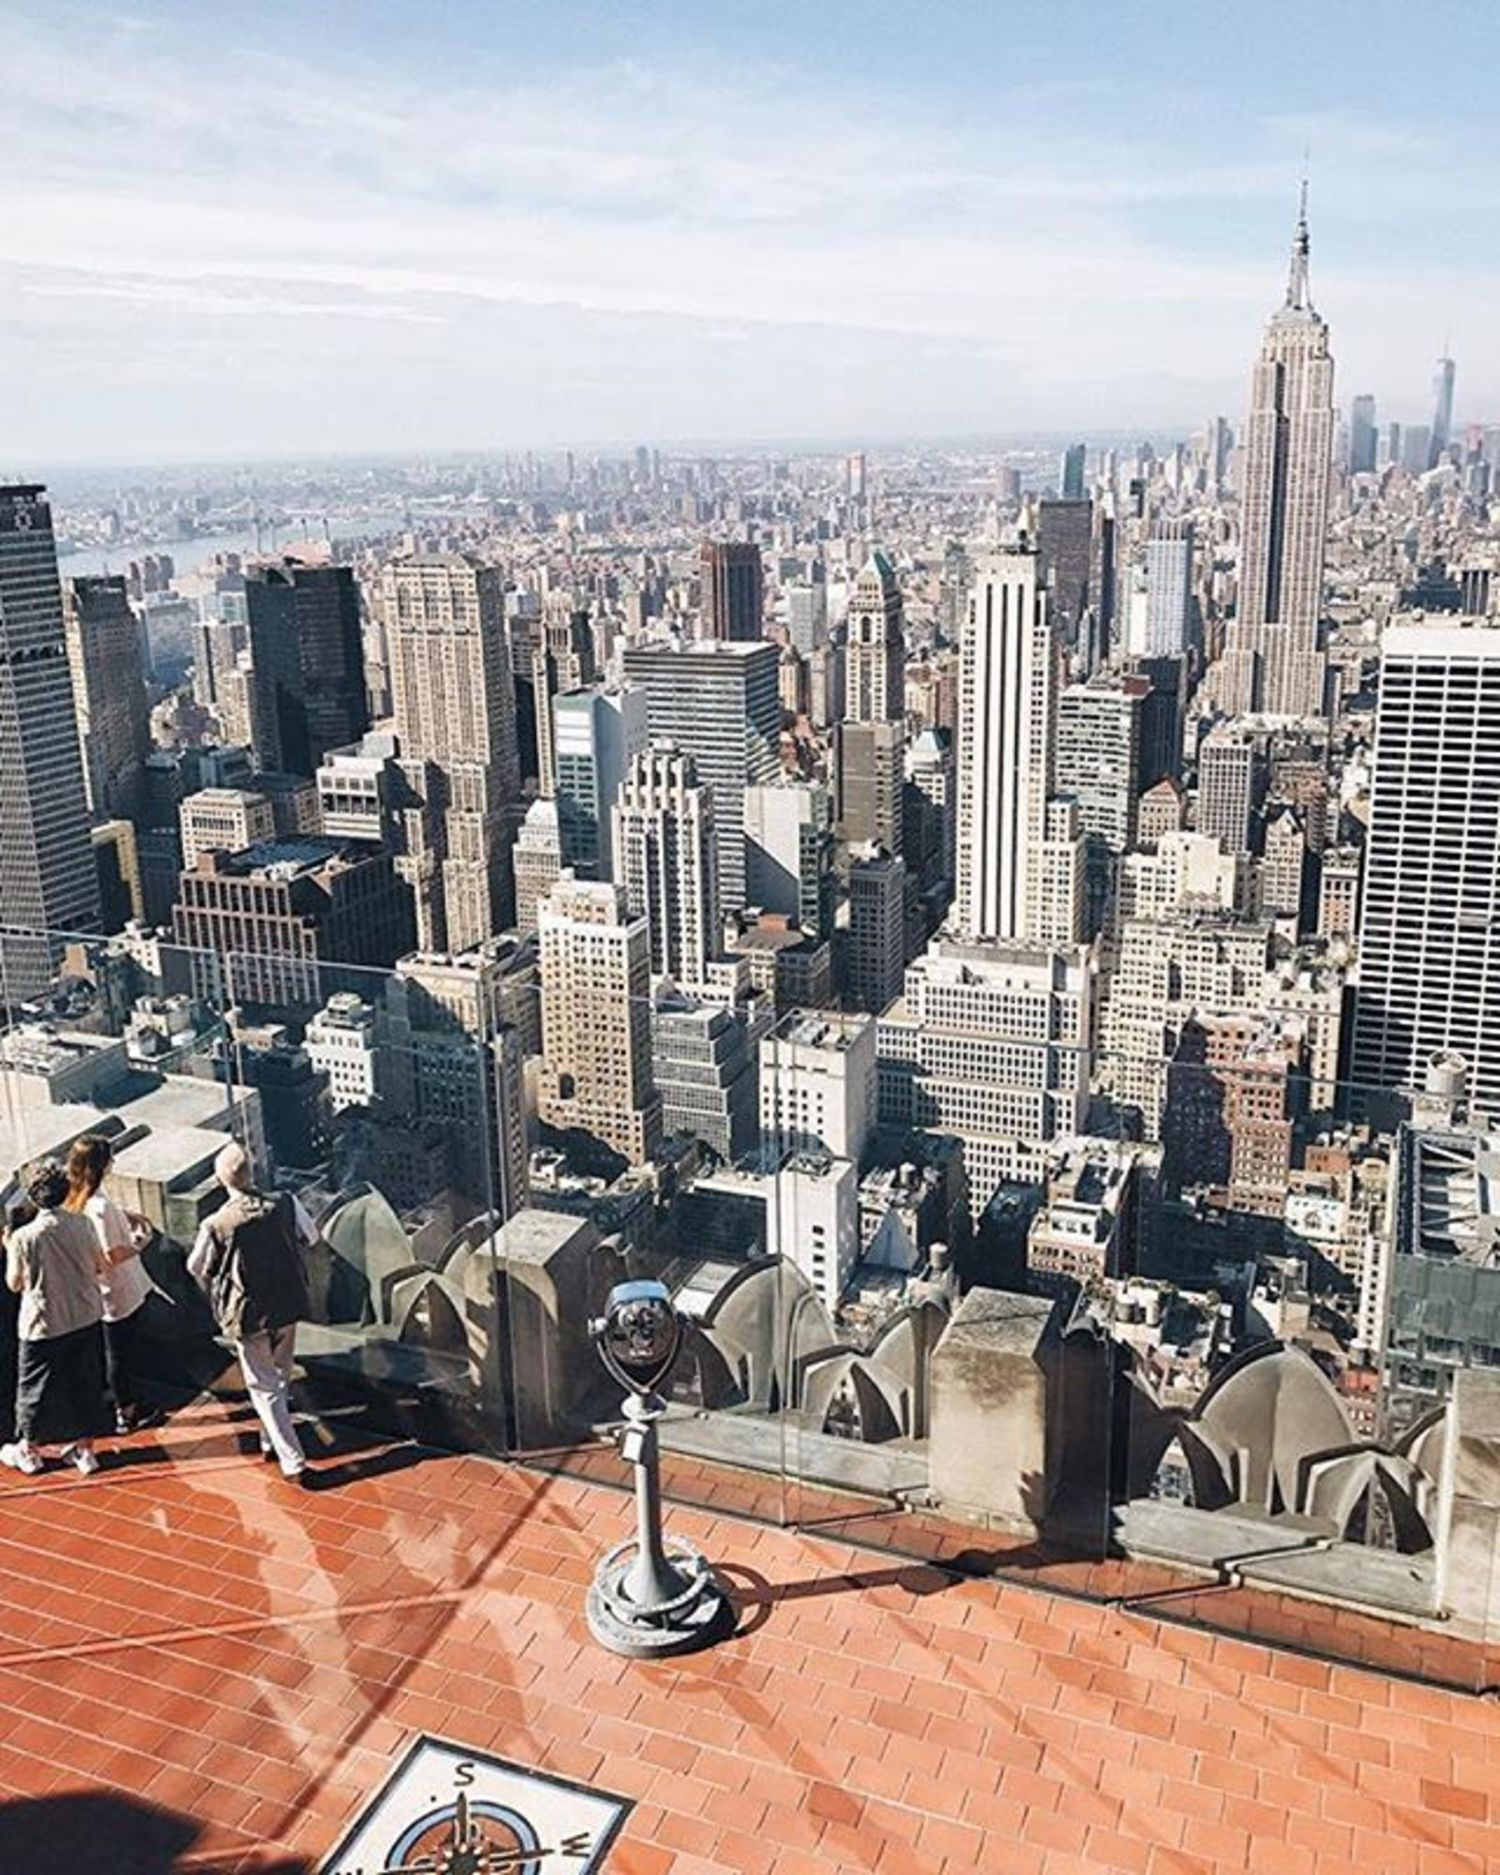 Top of the Rock, New York City. Photo via @melliekr #viewingnyc